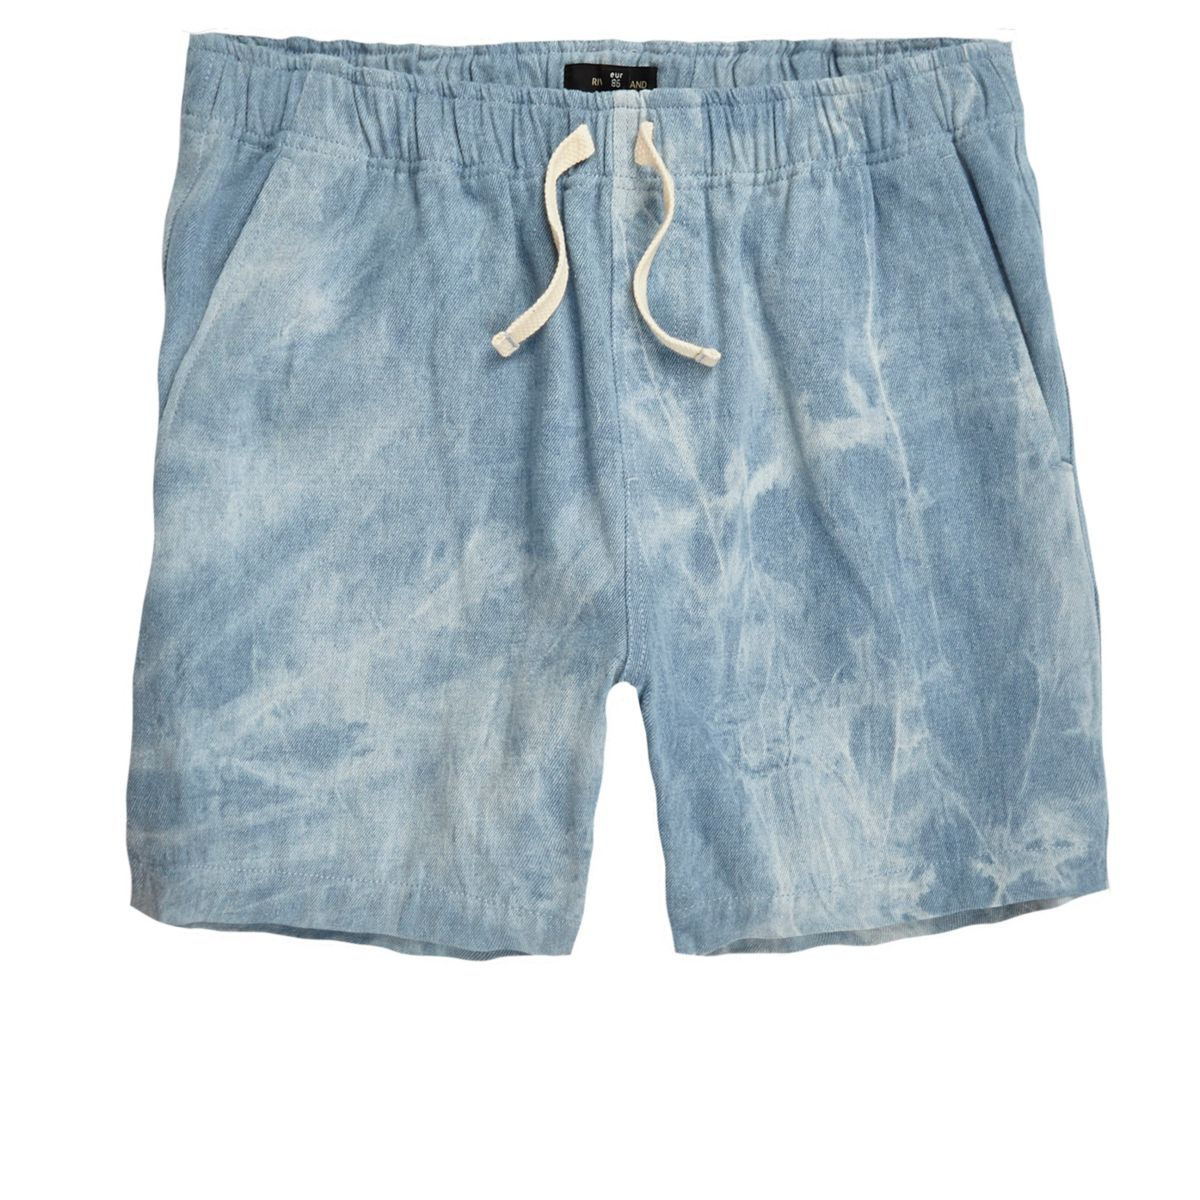 Blauwe acid wash geweven short